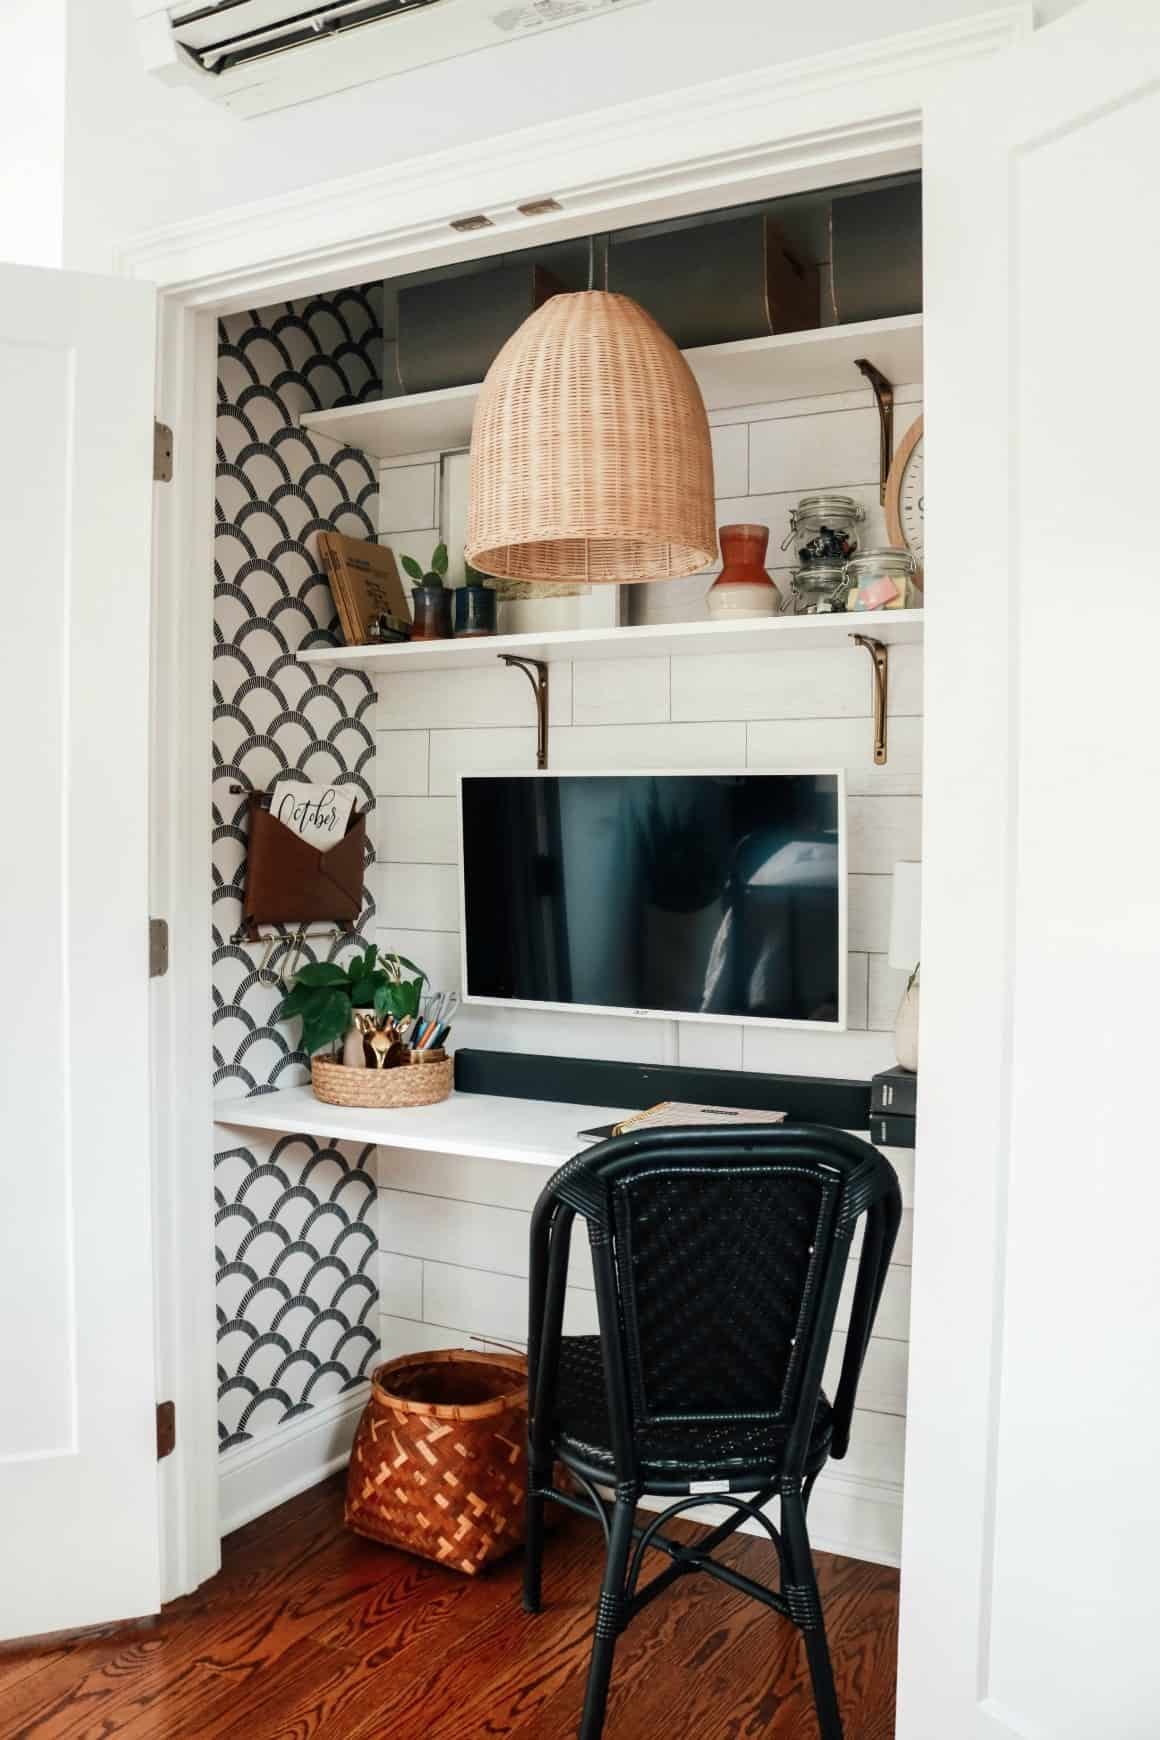 cloffice, home office in closet with basket light